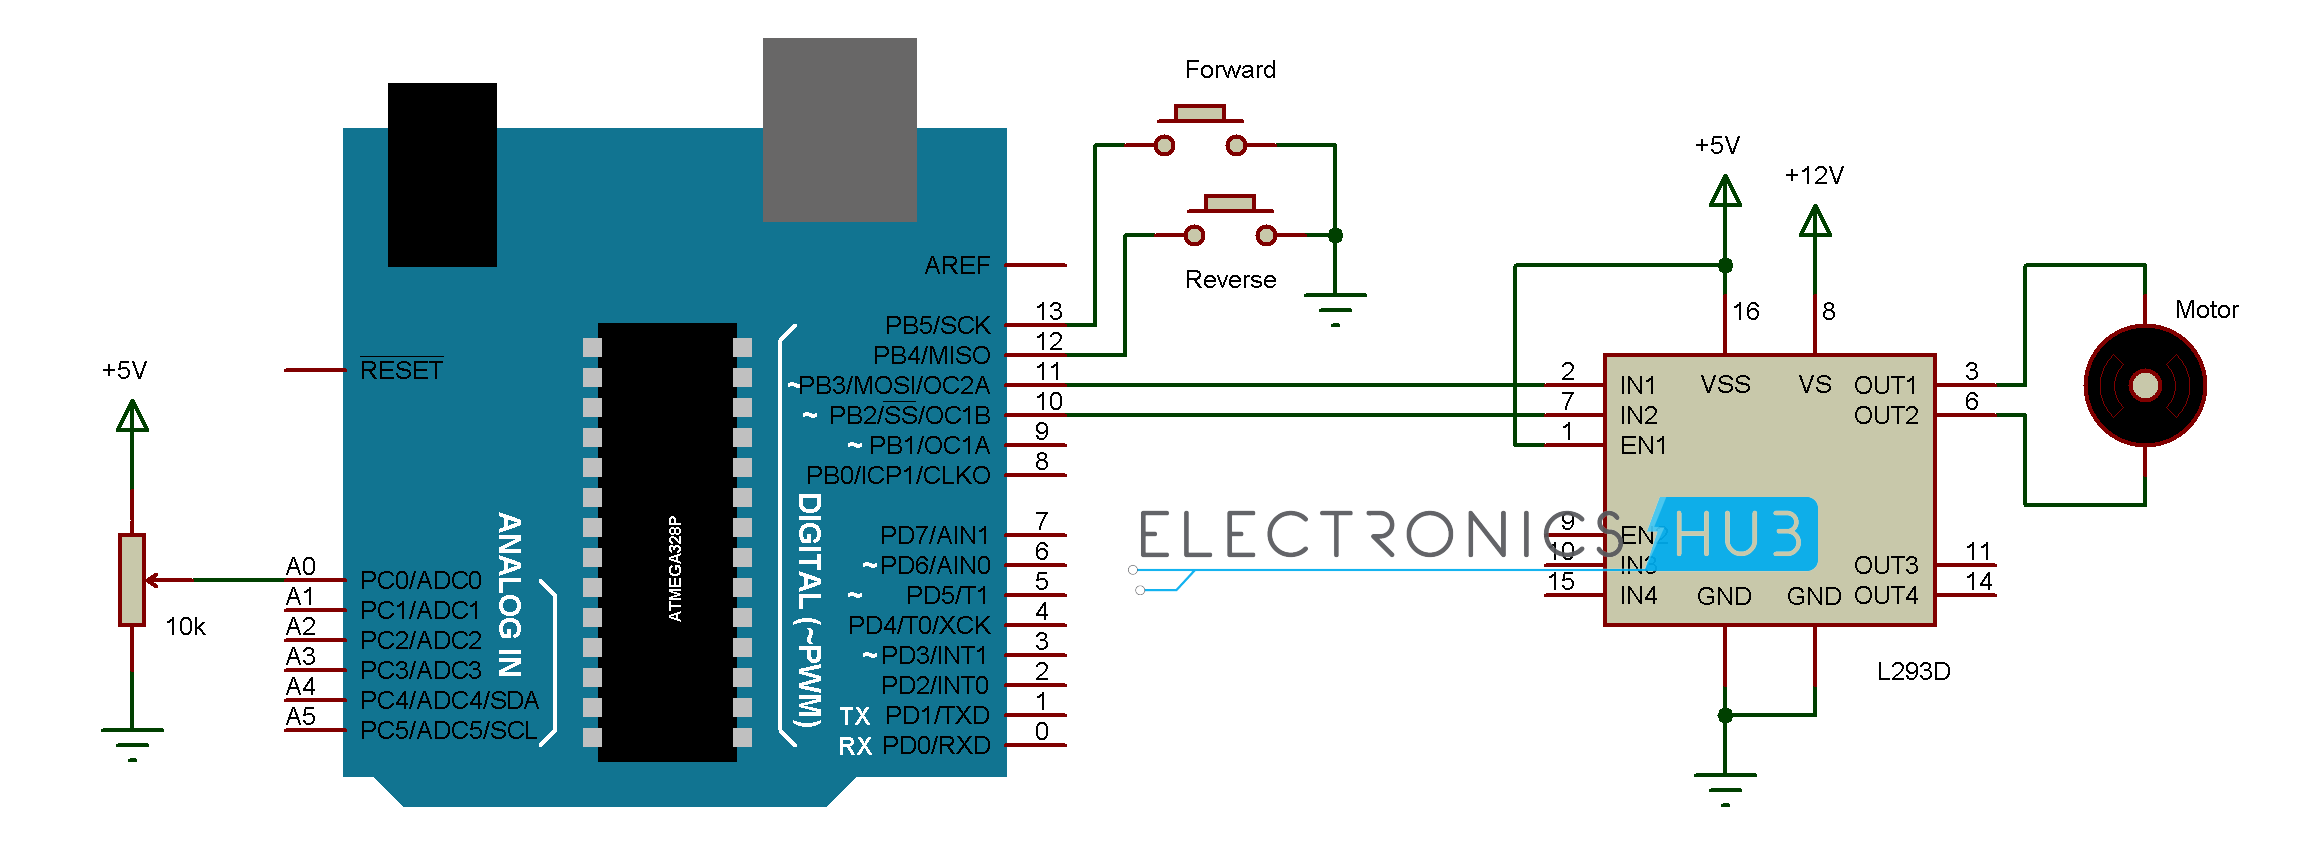 DC Motor Control With Arduino | Arduino and Circuit diagram